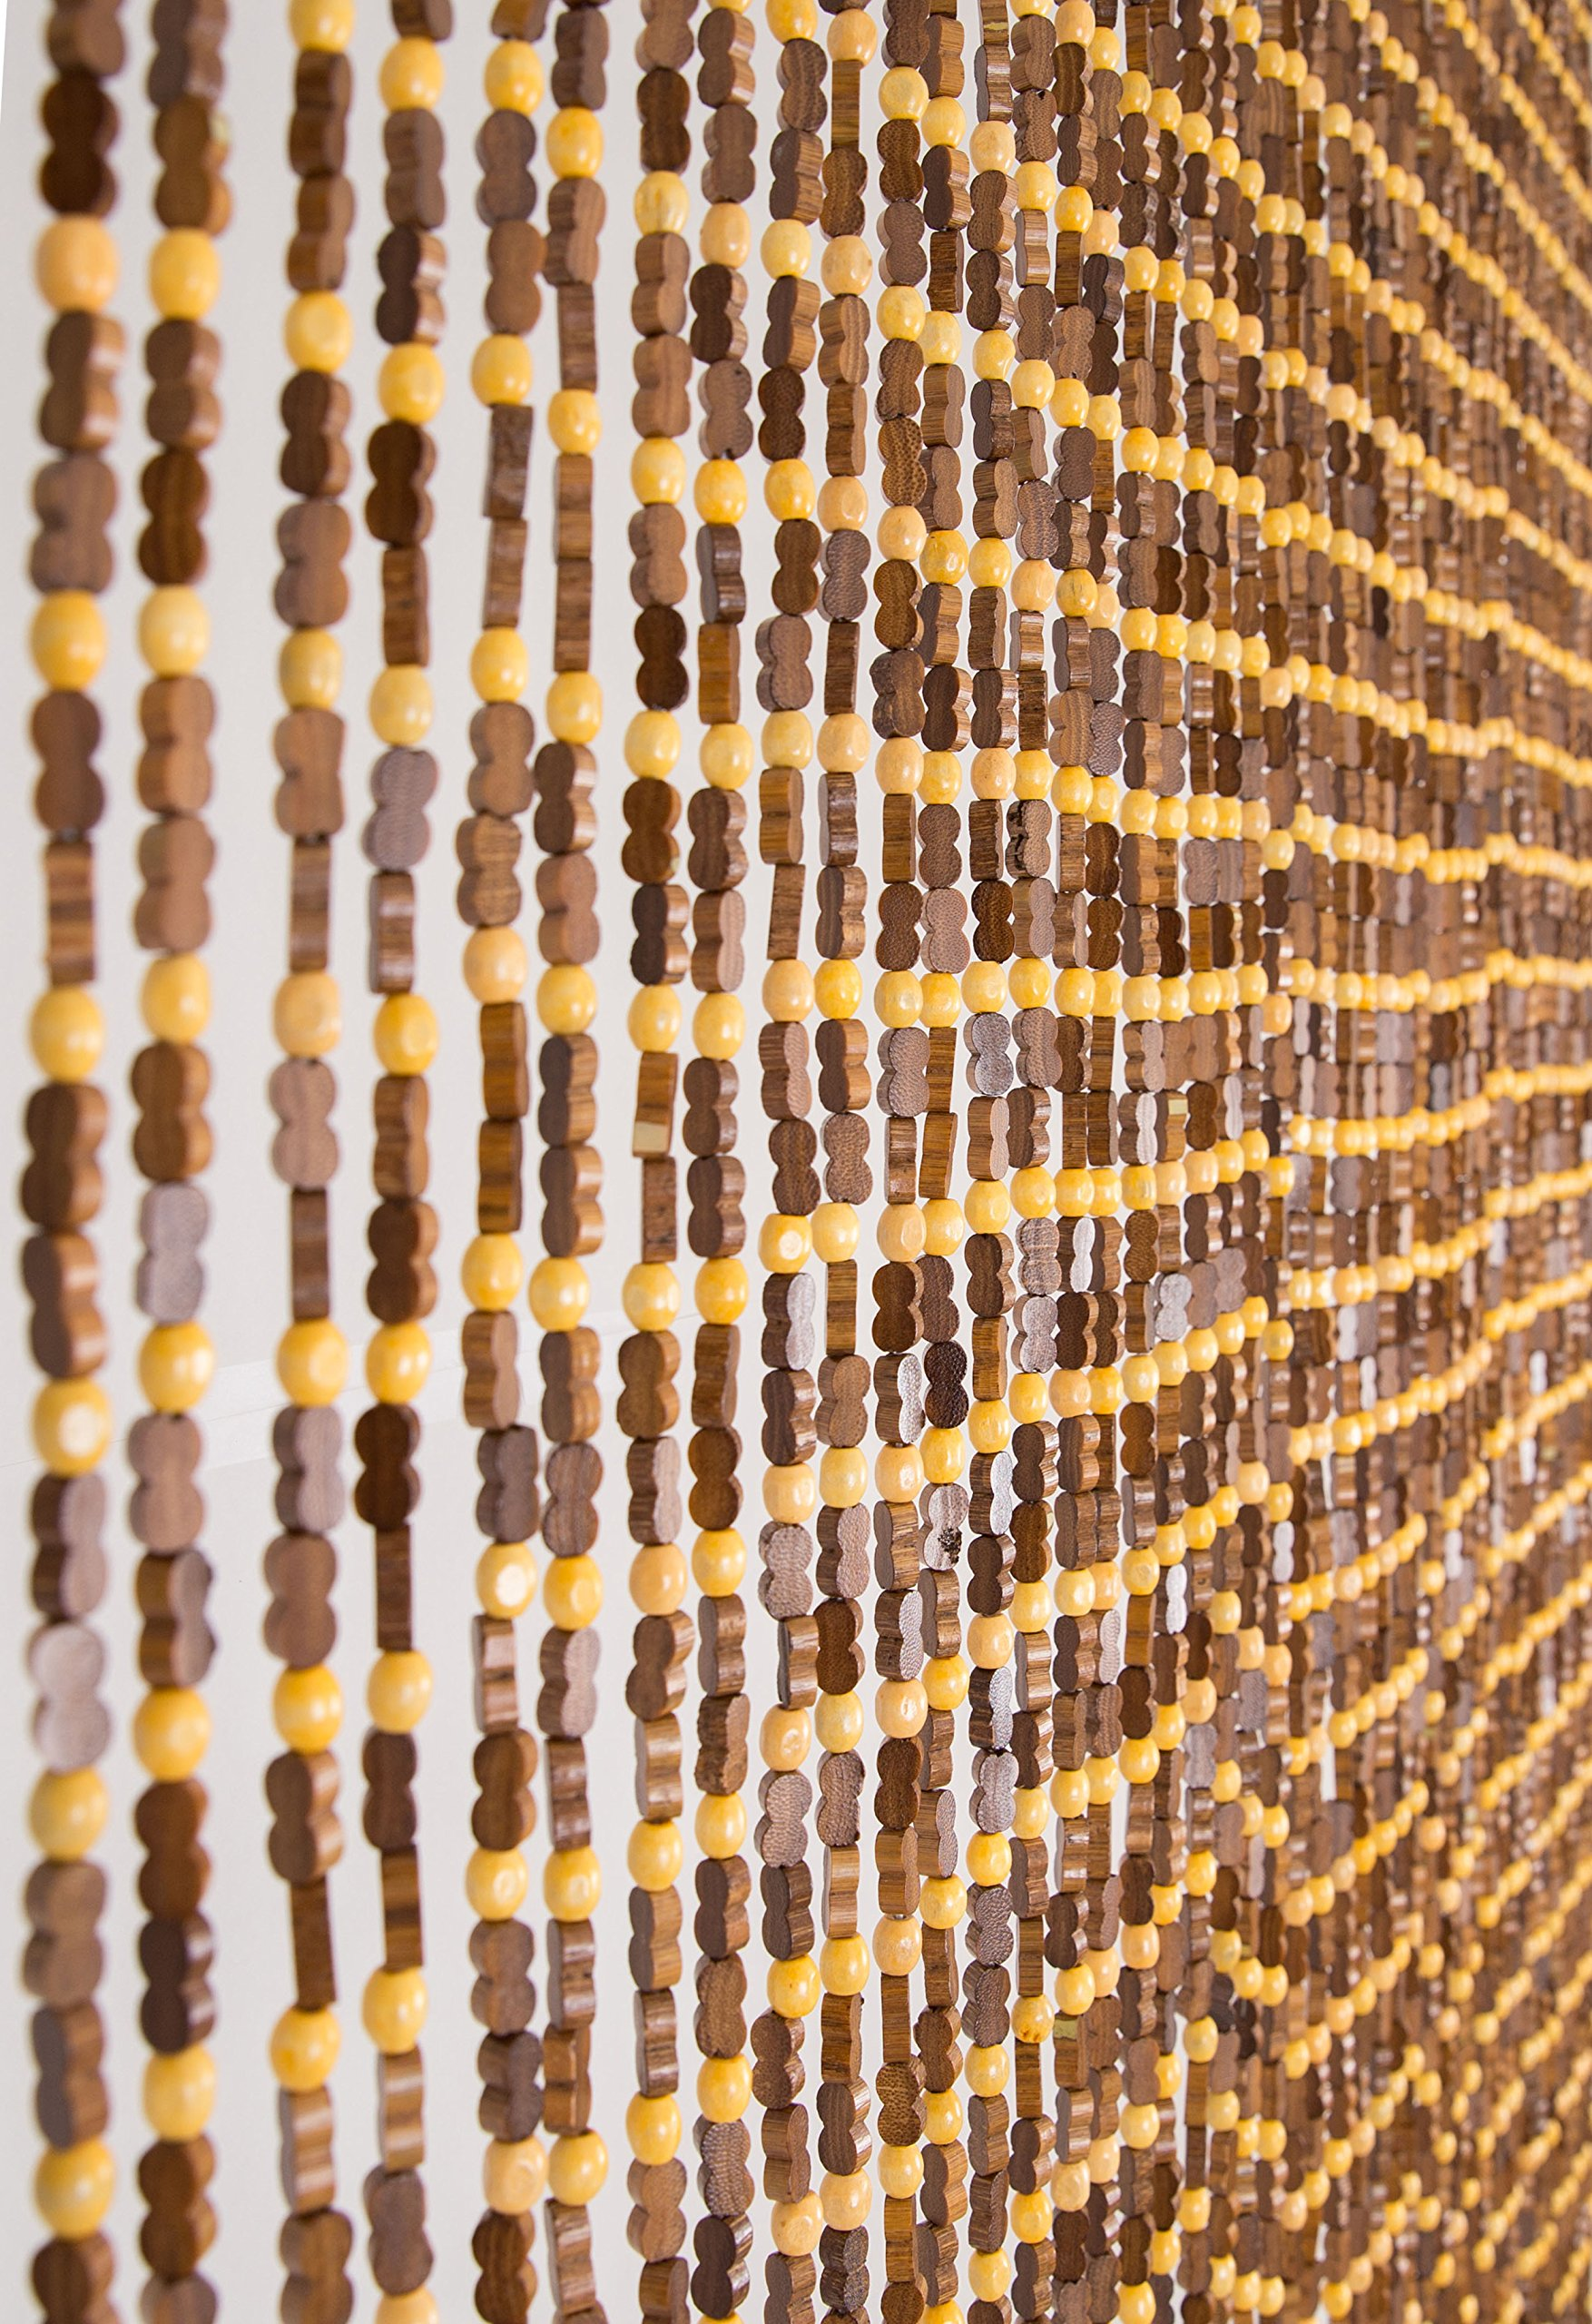 BeadedString Natural Wood and Bamboo Beaded Curtain-45 Strands-77 High-Plain Design-Bamboo and Wooden Doorway Beads-Boho Bohemian Curtain-35.5'' W x 77'' H-SunshineBr by BeadedString (Image #3)